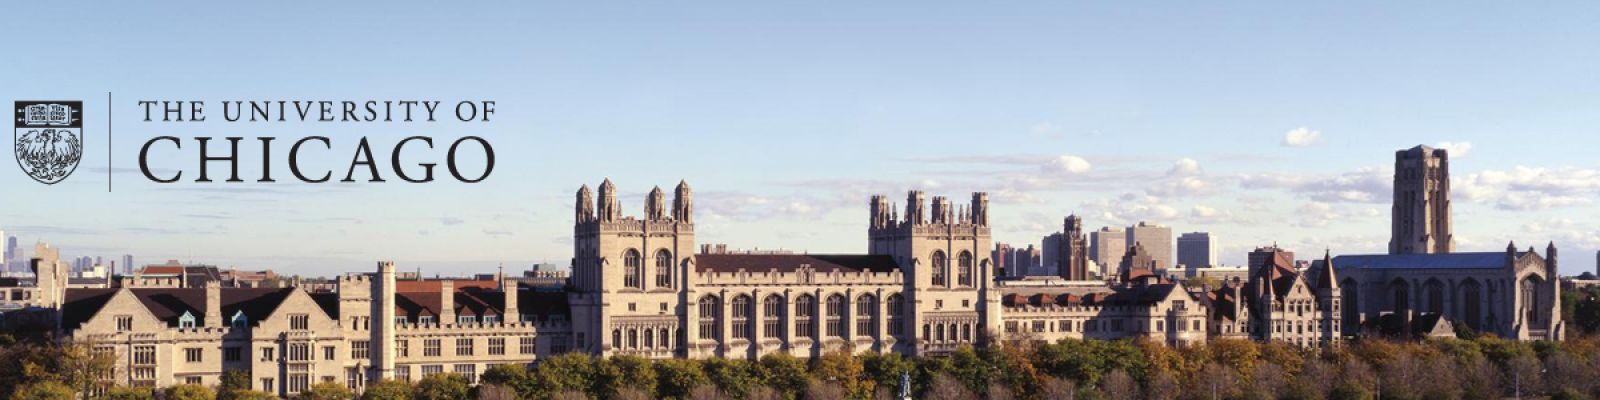 UChicago Campus Image